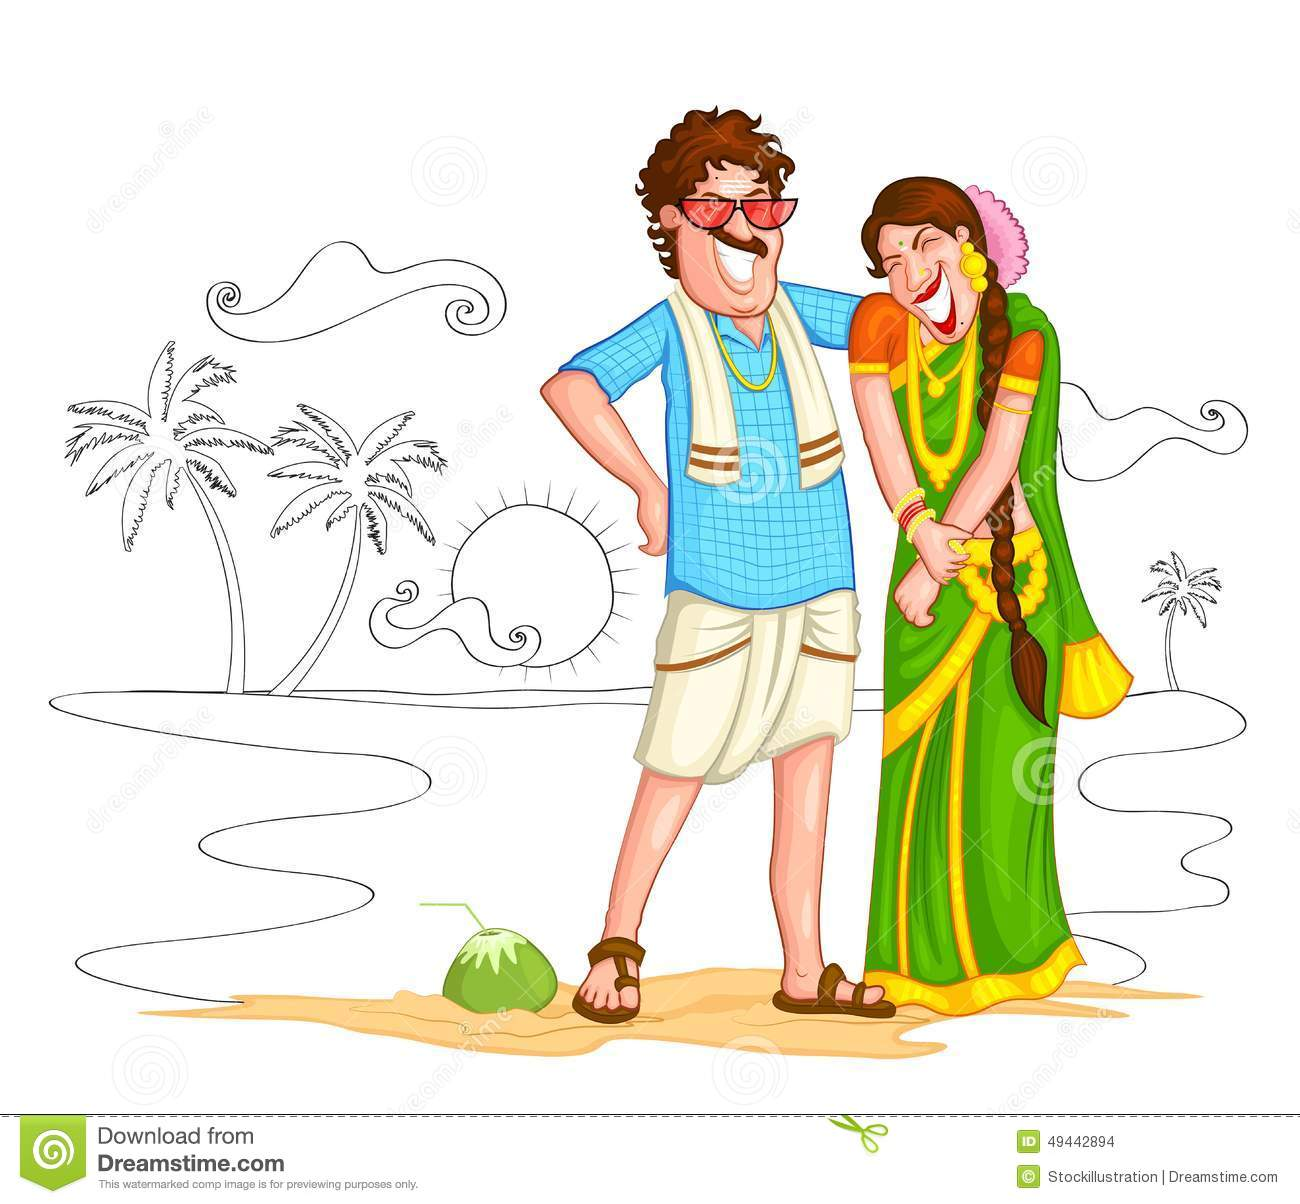 South indian wedding clipart.